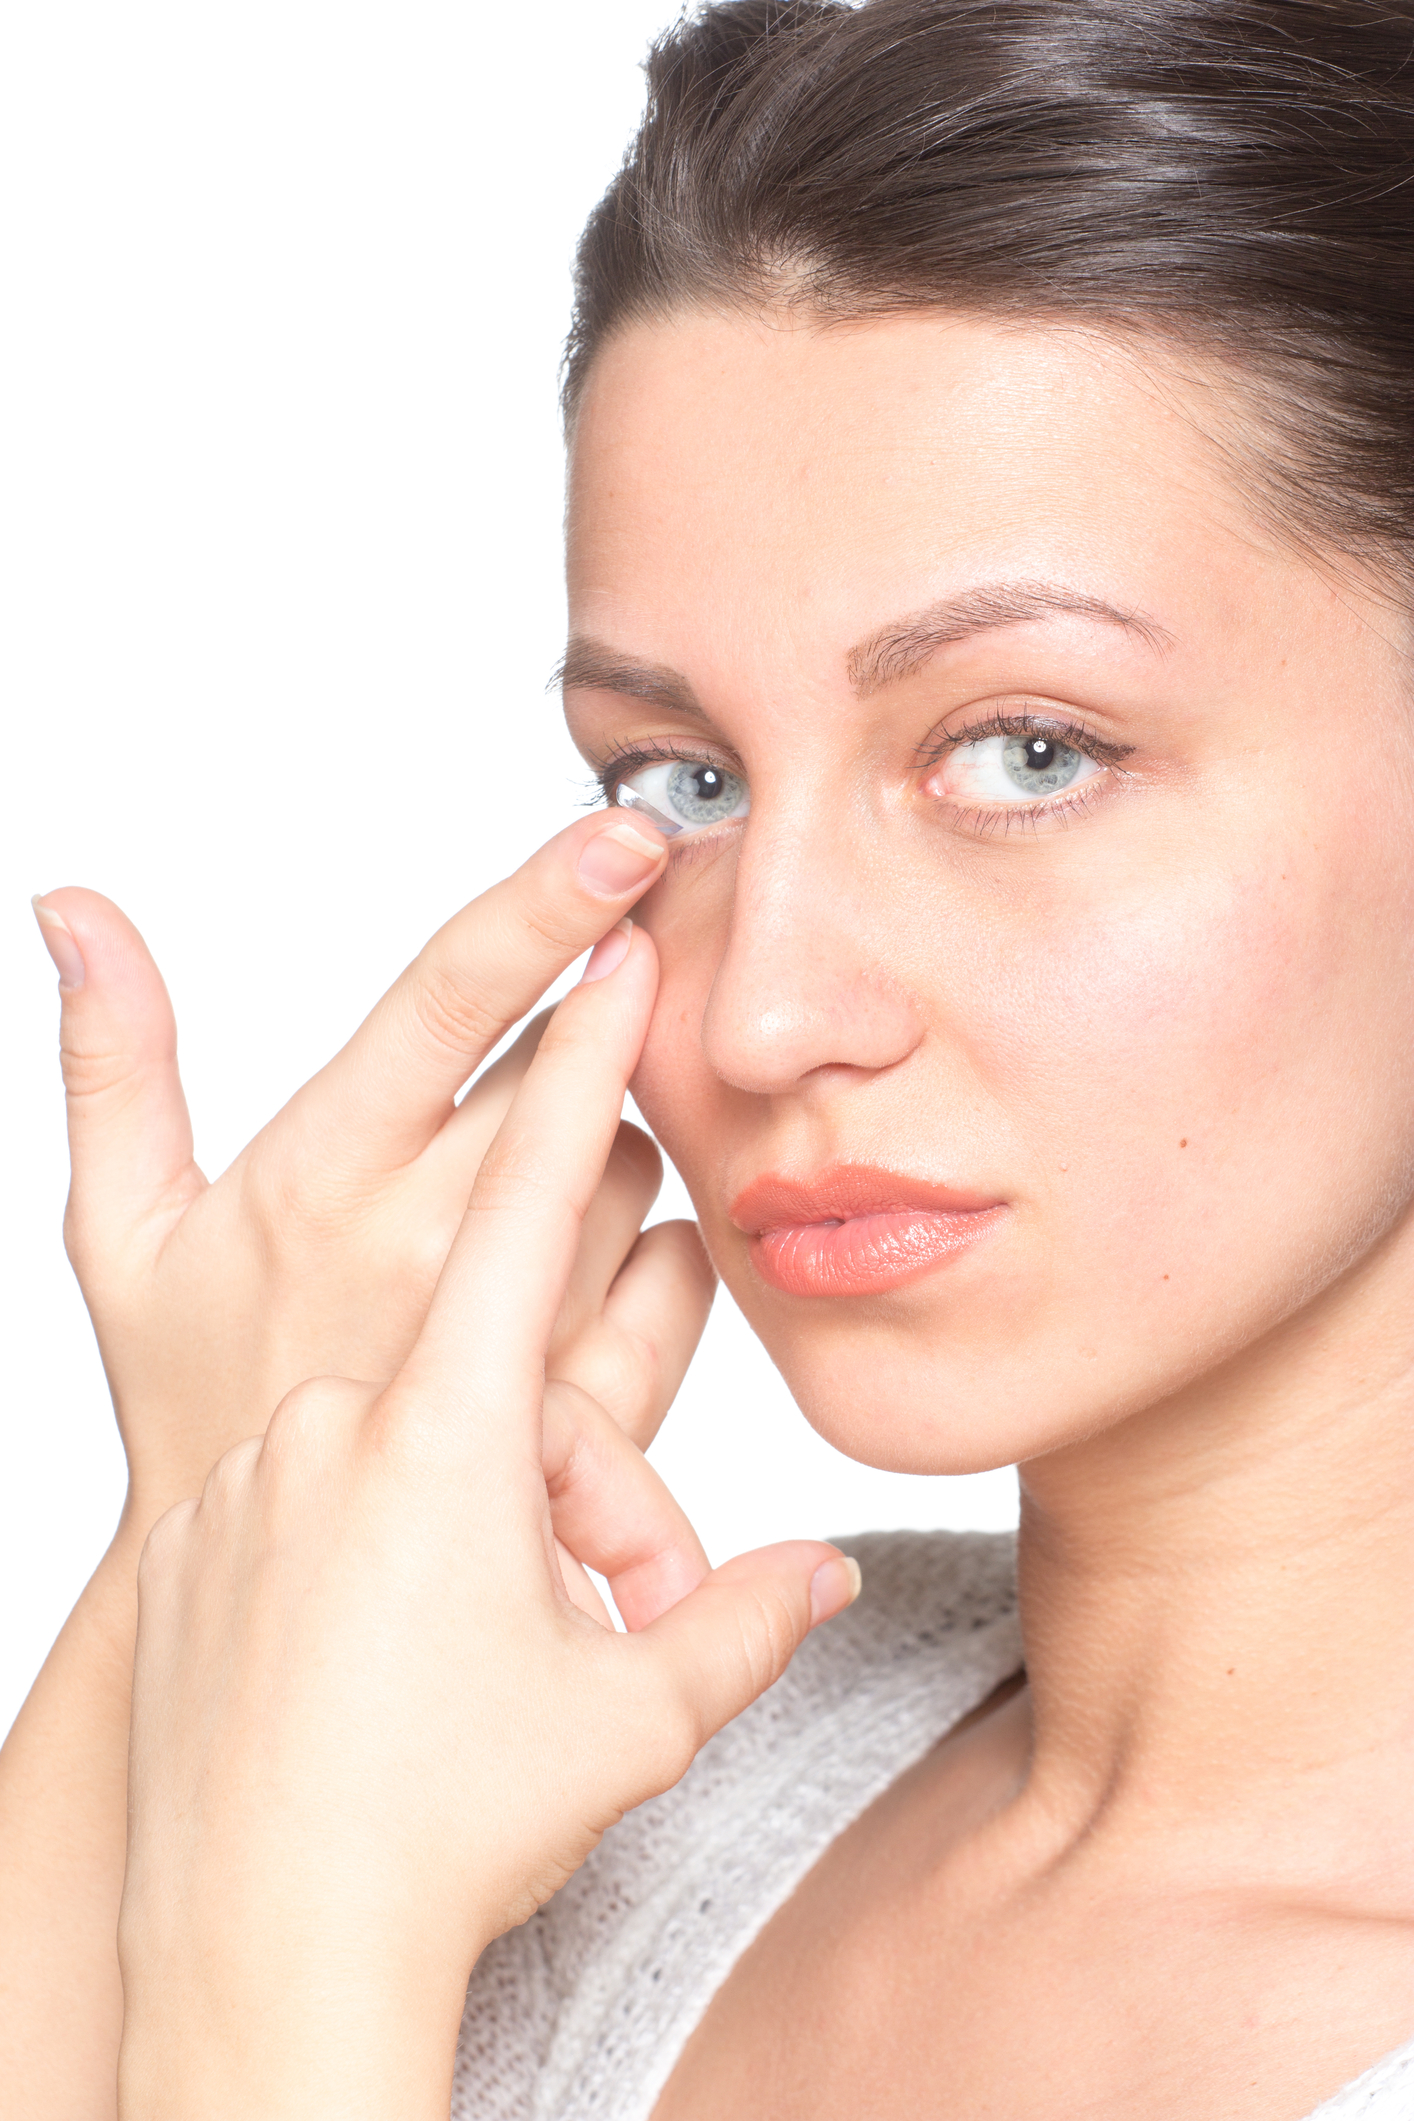 Comfortable contact lenses optique of denver woman applying contact lens nvjuhfo Images